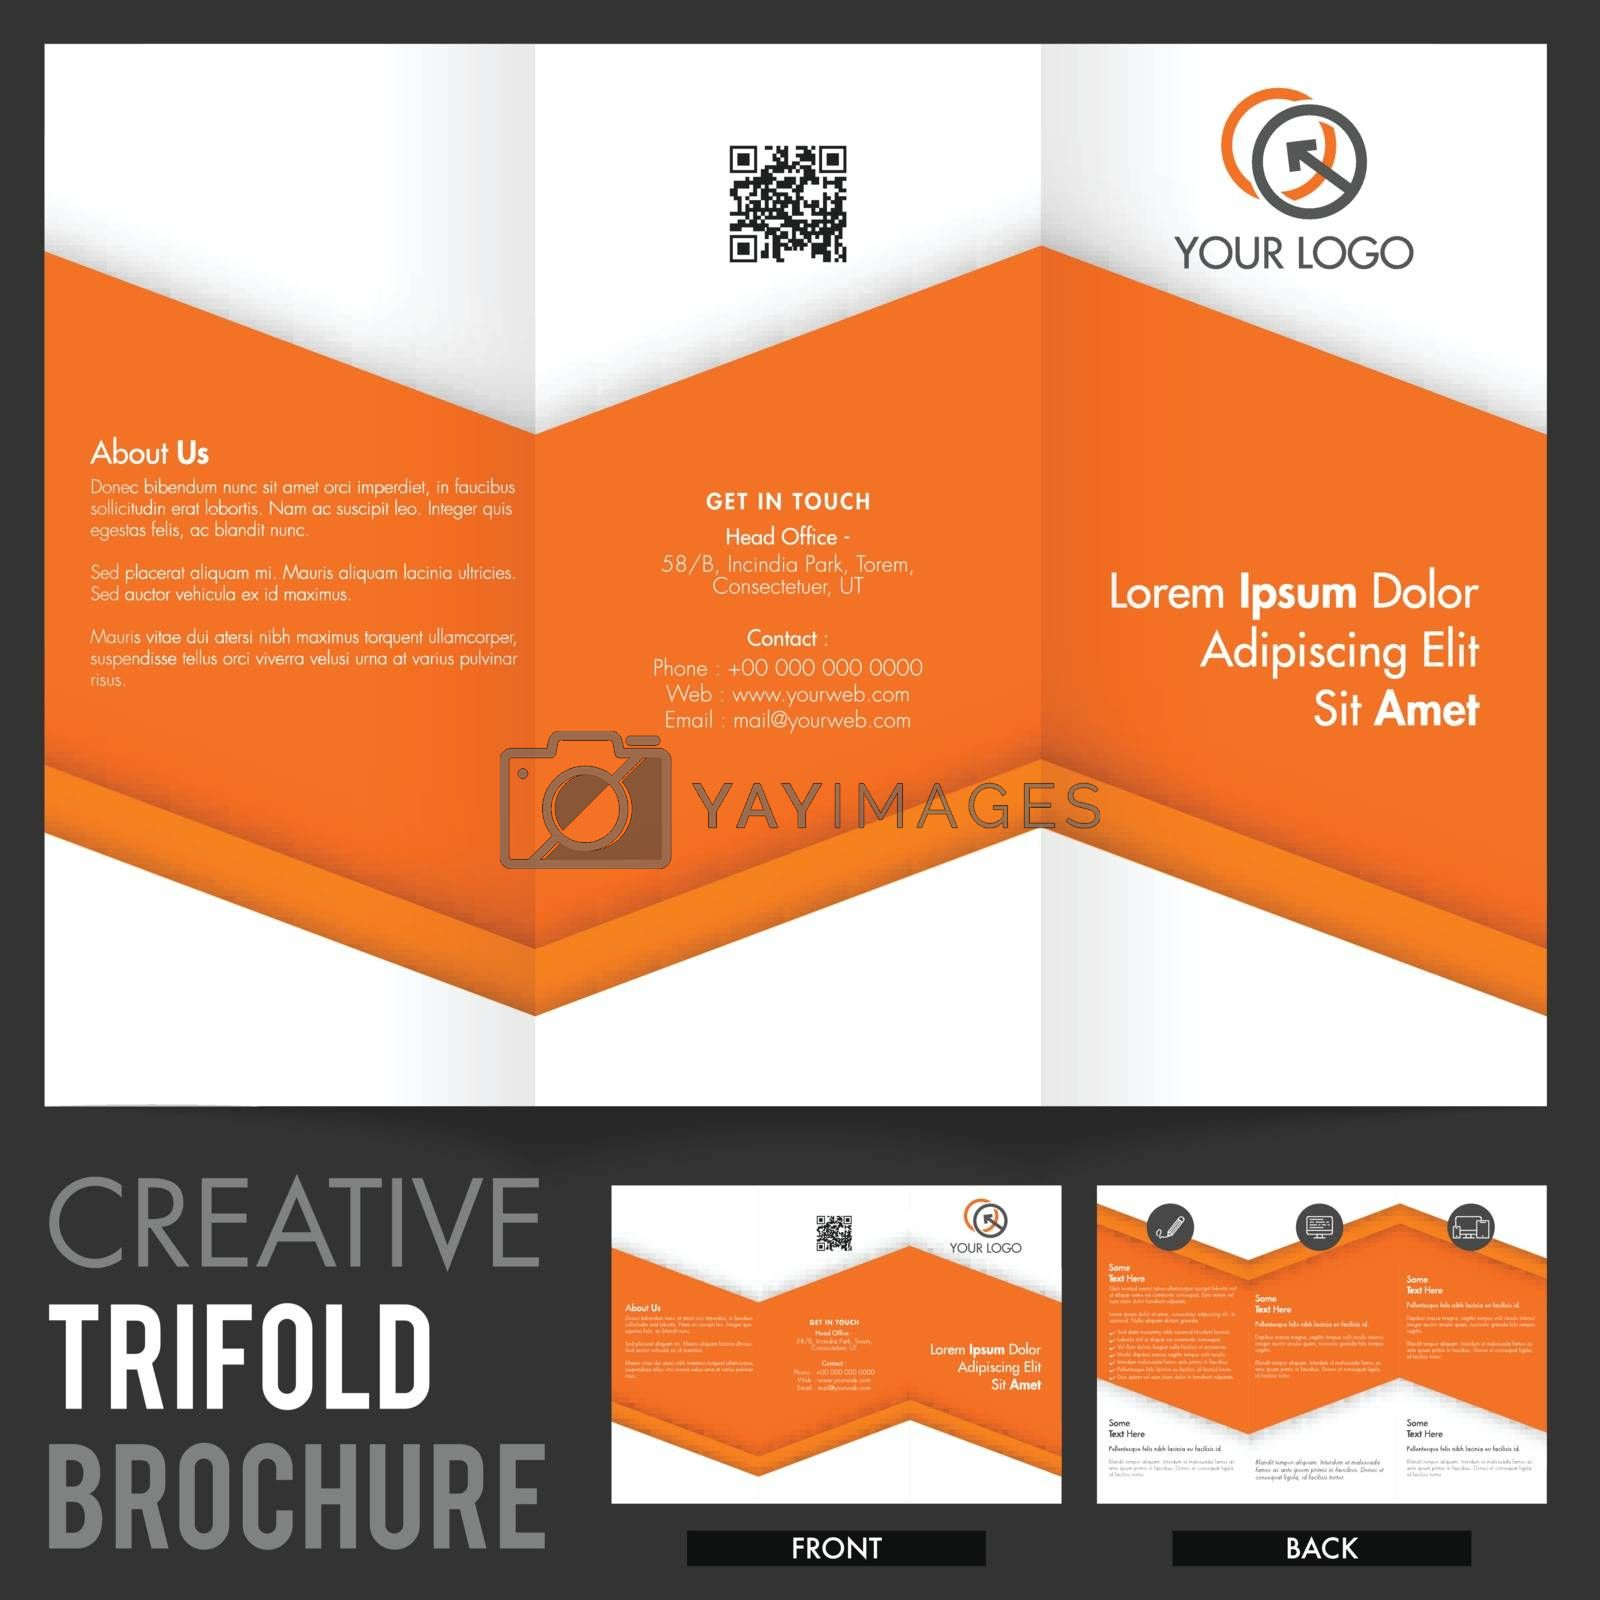 Creative Tri-Fold Brochure, Template design with front and back page view for Business concept.